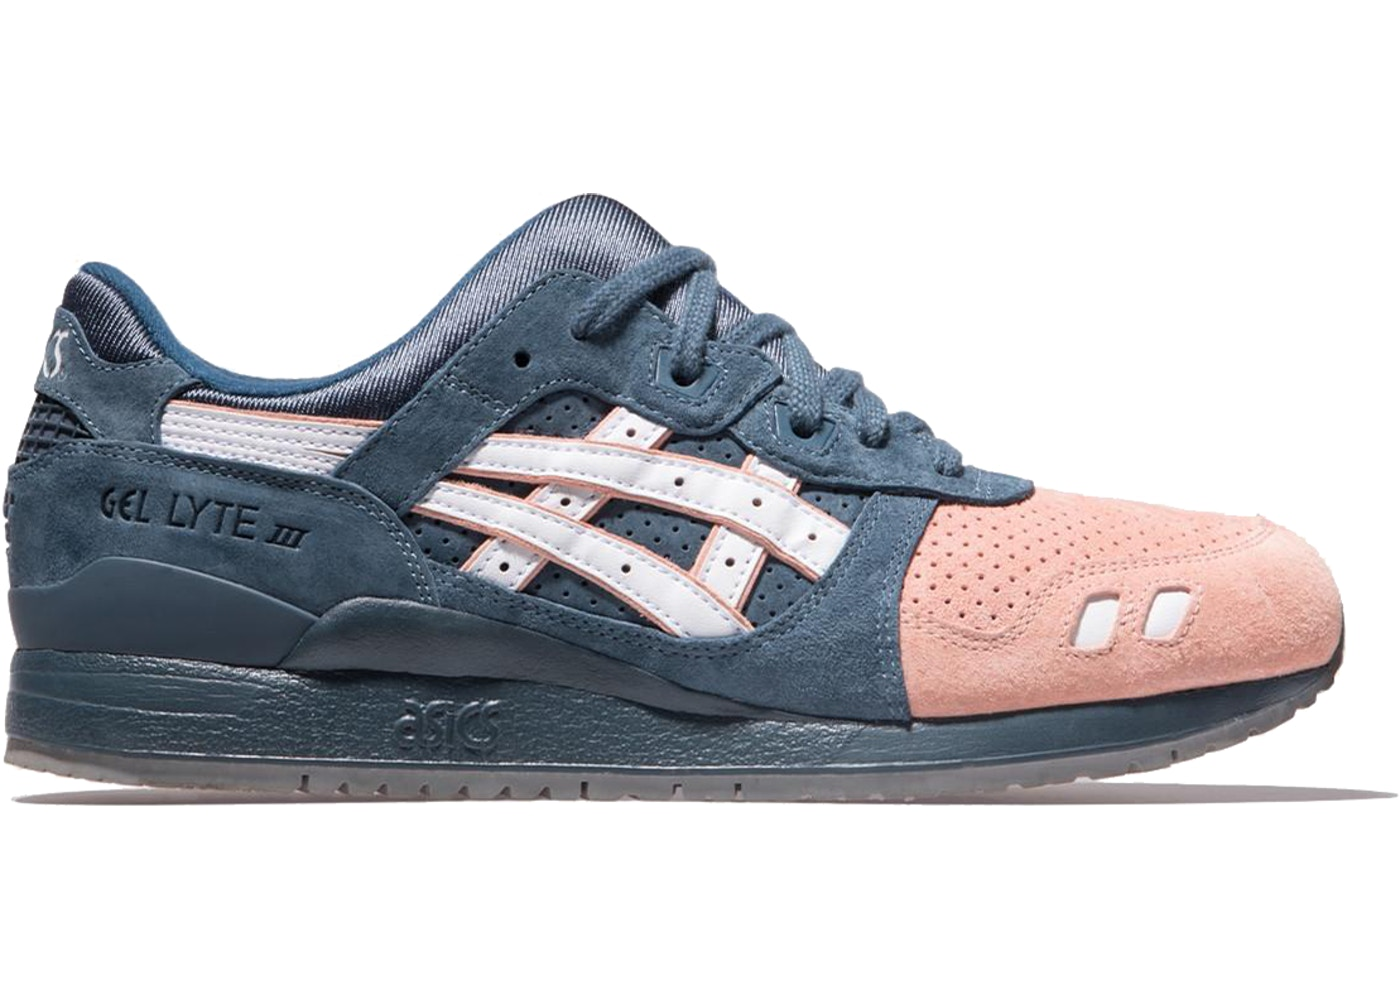 separation shoes 22267 bff77 ASICS Gel-Lyte III Ronnie Fieg Salmon Toe 2.0 (Special Box)